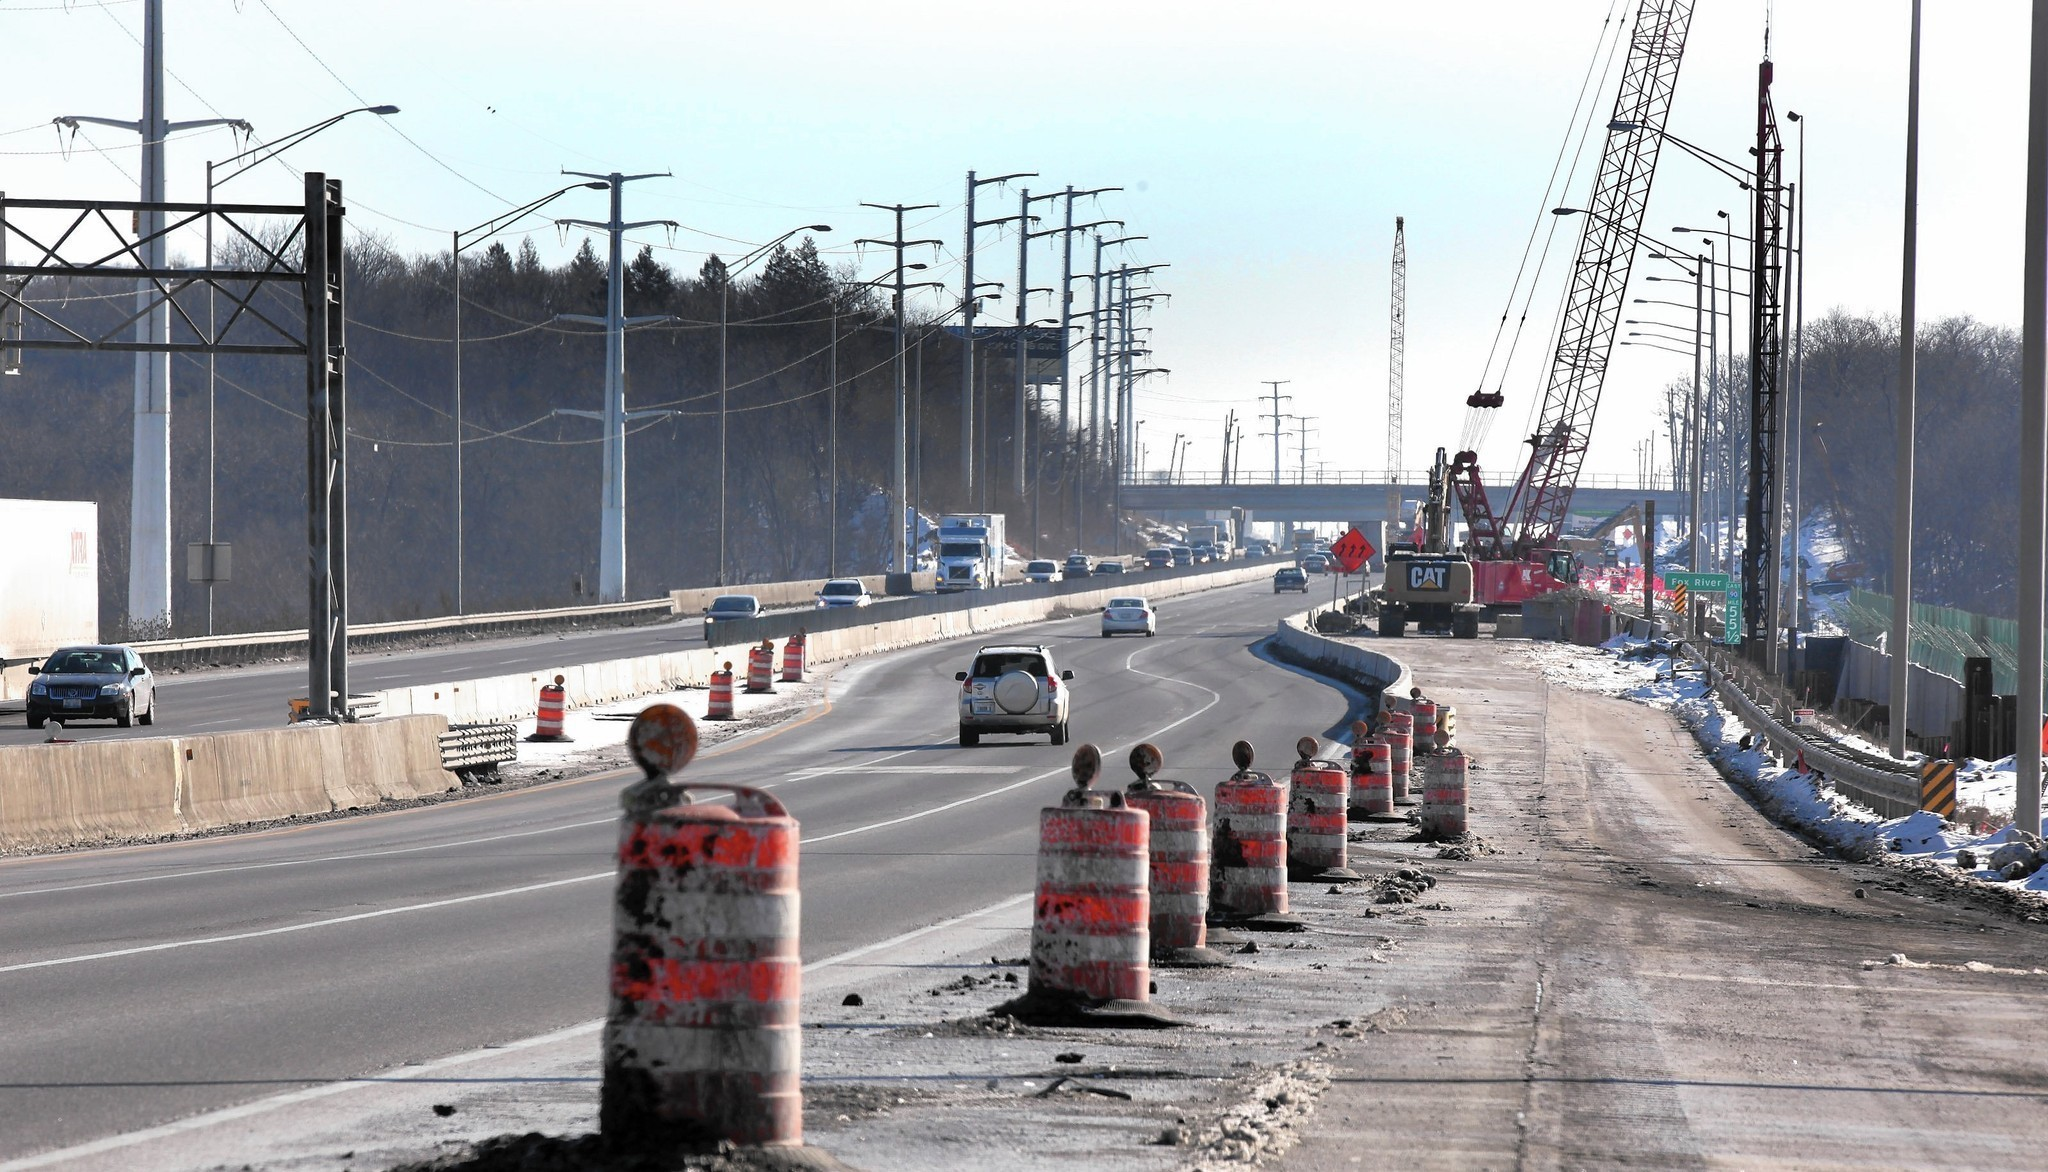 Extra work on Addams project will cost another 195M